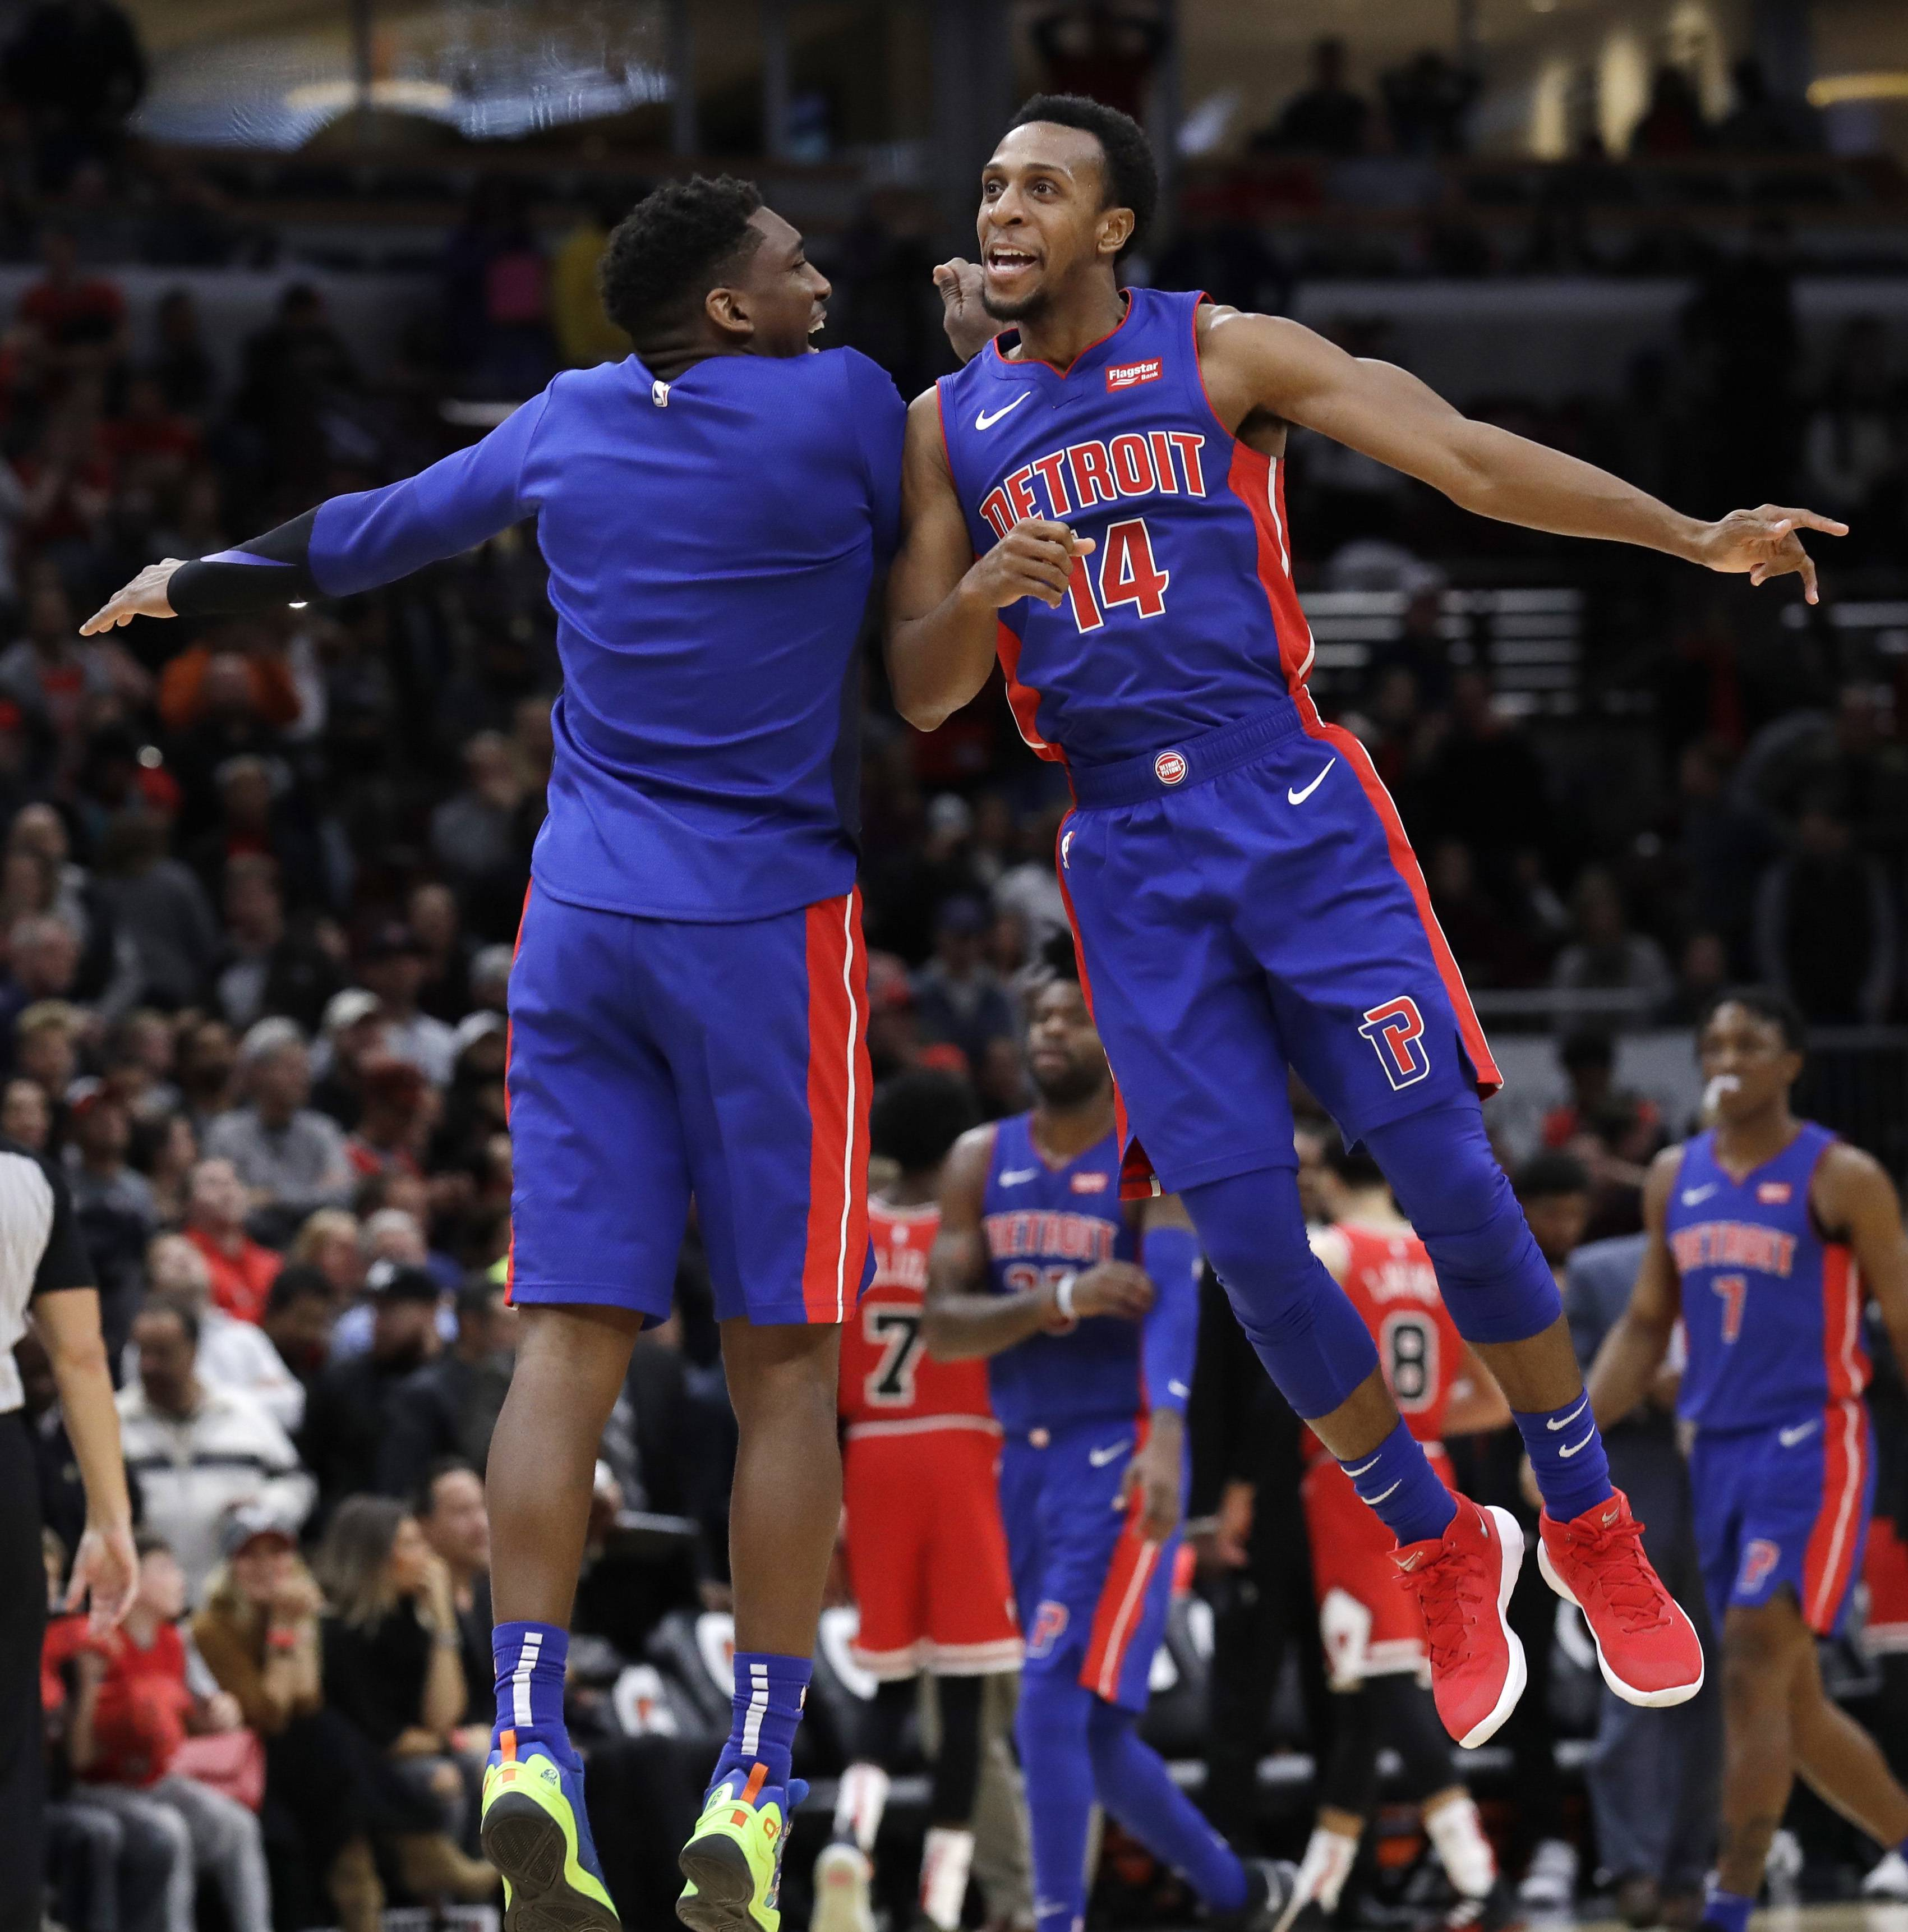 Detroit Pistons guard Ish Smith, right, celebrates with guard Langston Galloway after the Pistons defeated the Chicago Bulls 118-116 in an NBA basketball game Saturday, Oct. 20, 2018, in Chicago. (AP Photo/Nam Y. Huh)